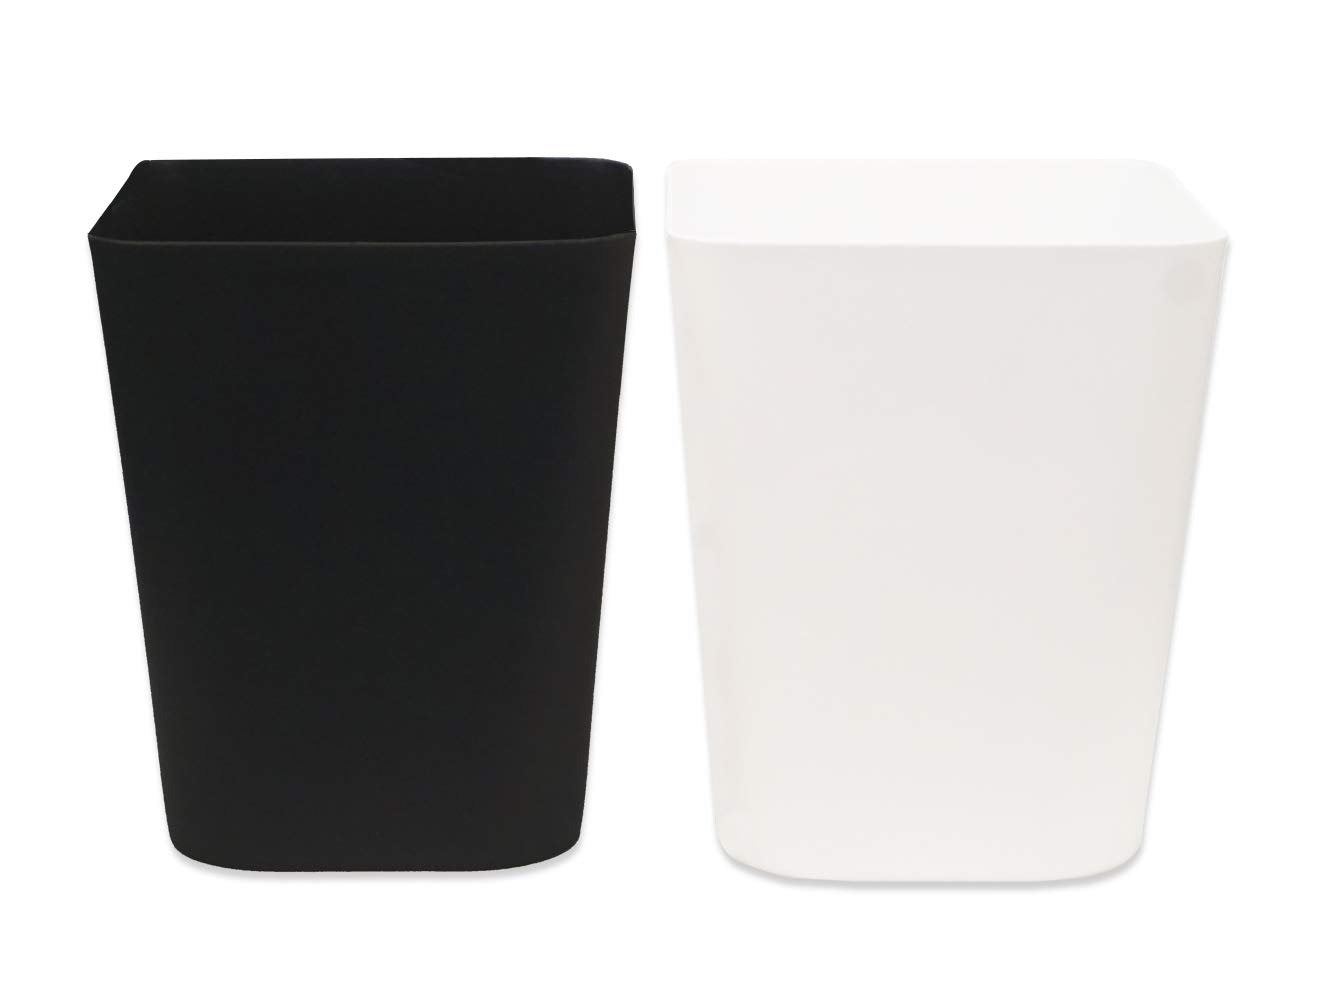 Gereen 1.6 Manufacturer direct delivery Gallon Wastebasket safety 2 Pack Bin Garbage Trash Small Can